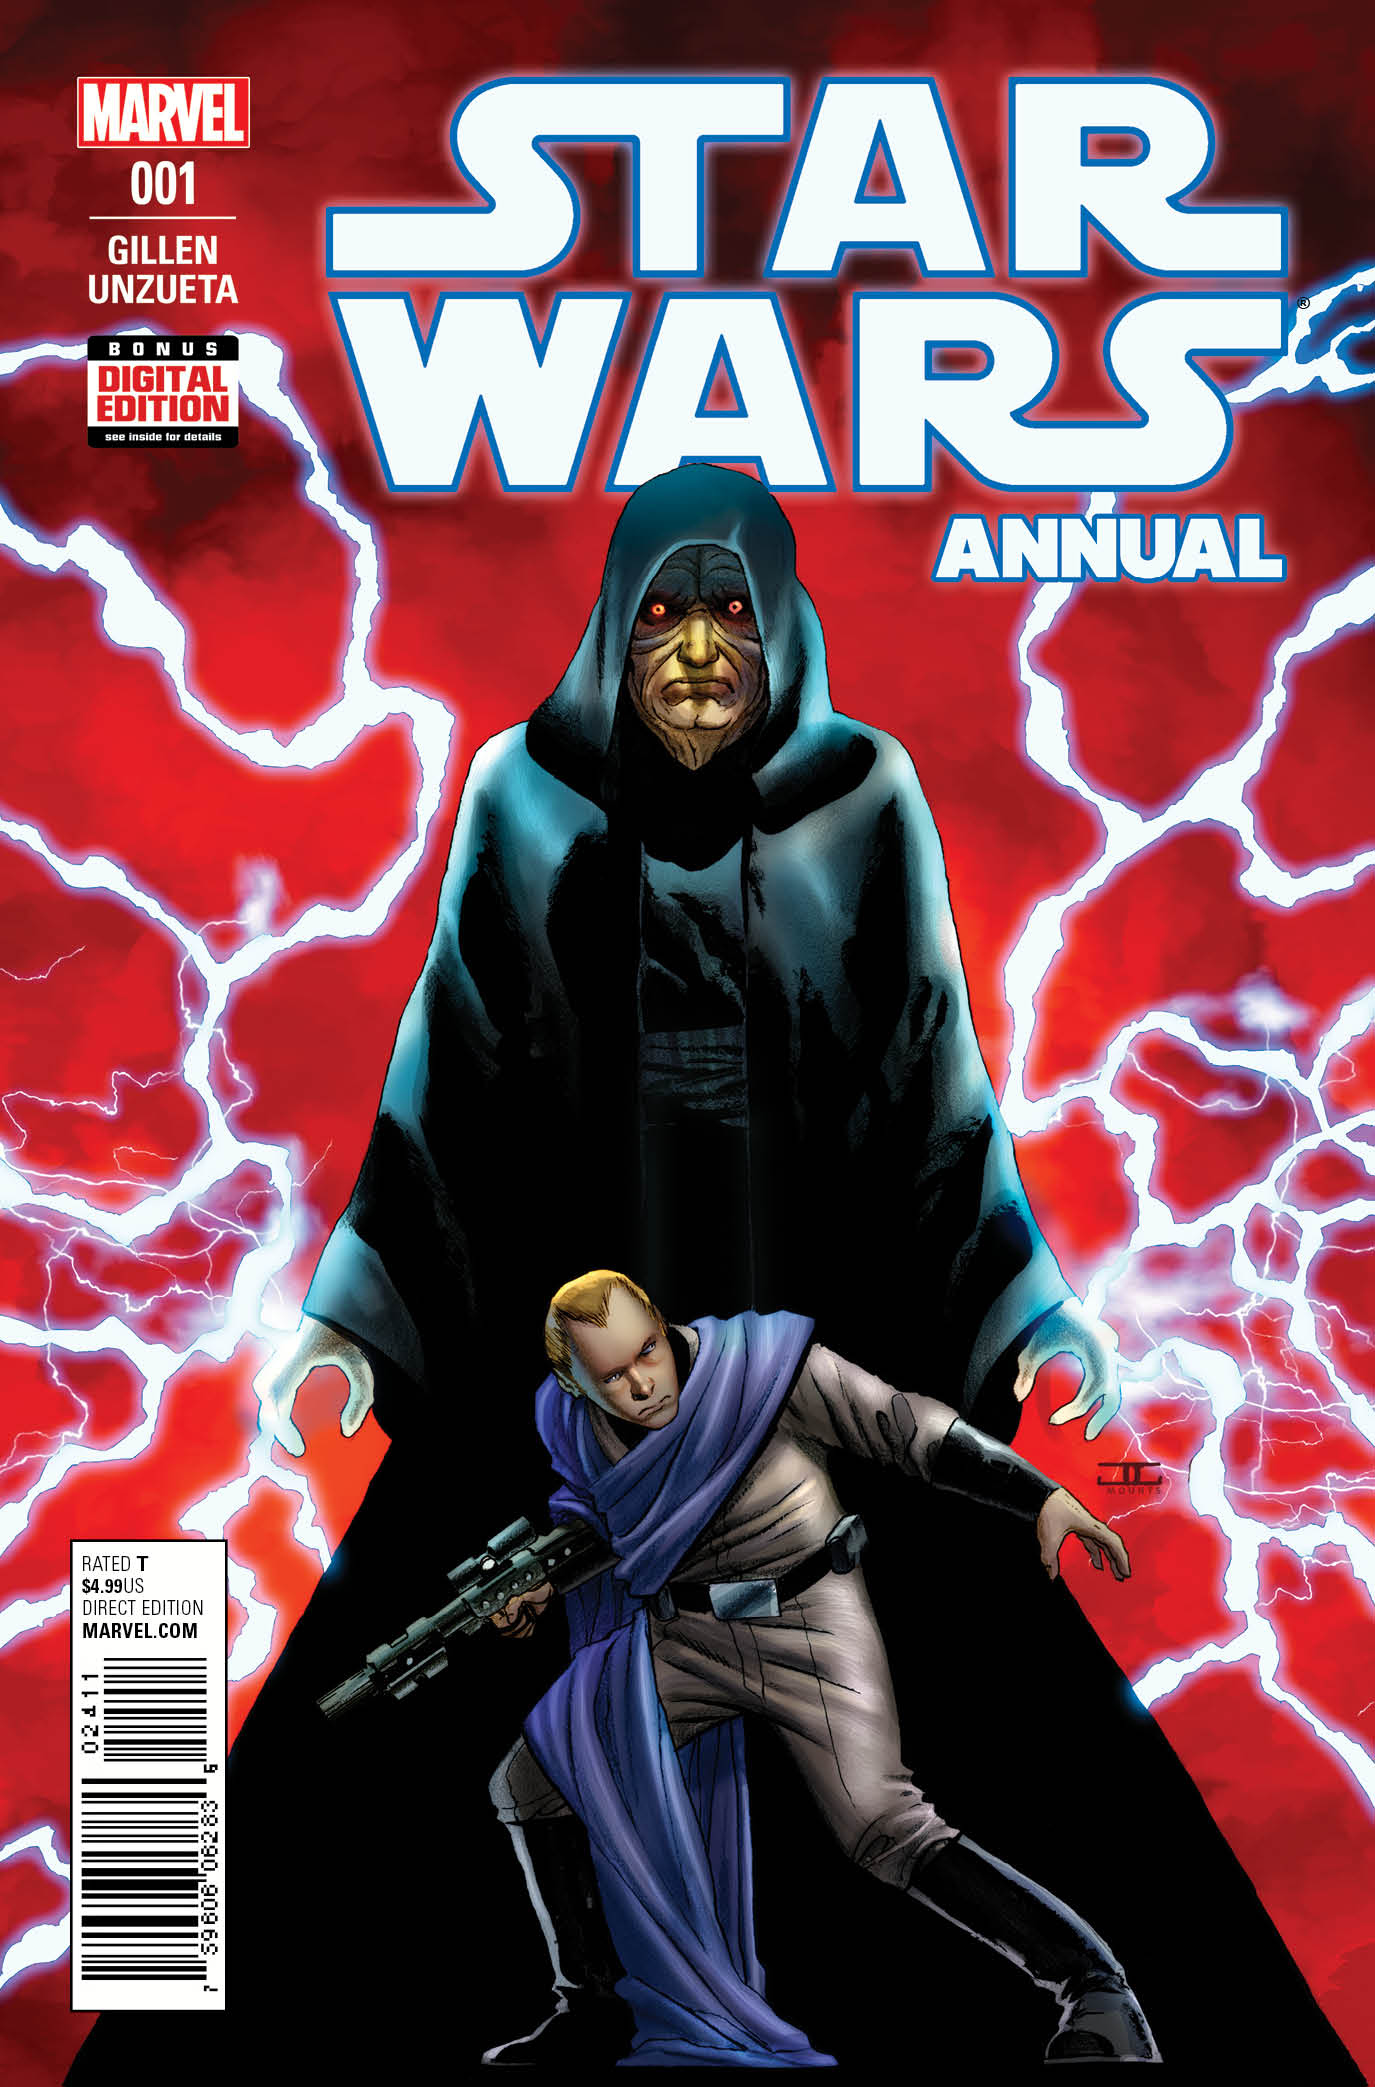 Marvel S Star Wars And Darth Vader Annual Covers Starwars Com